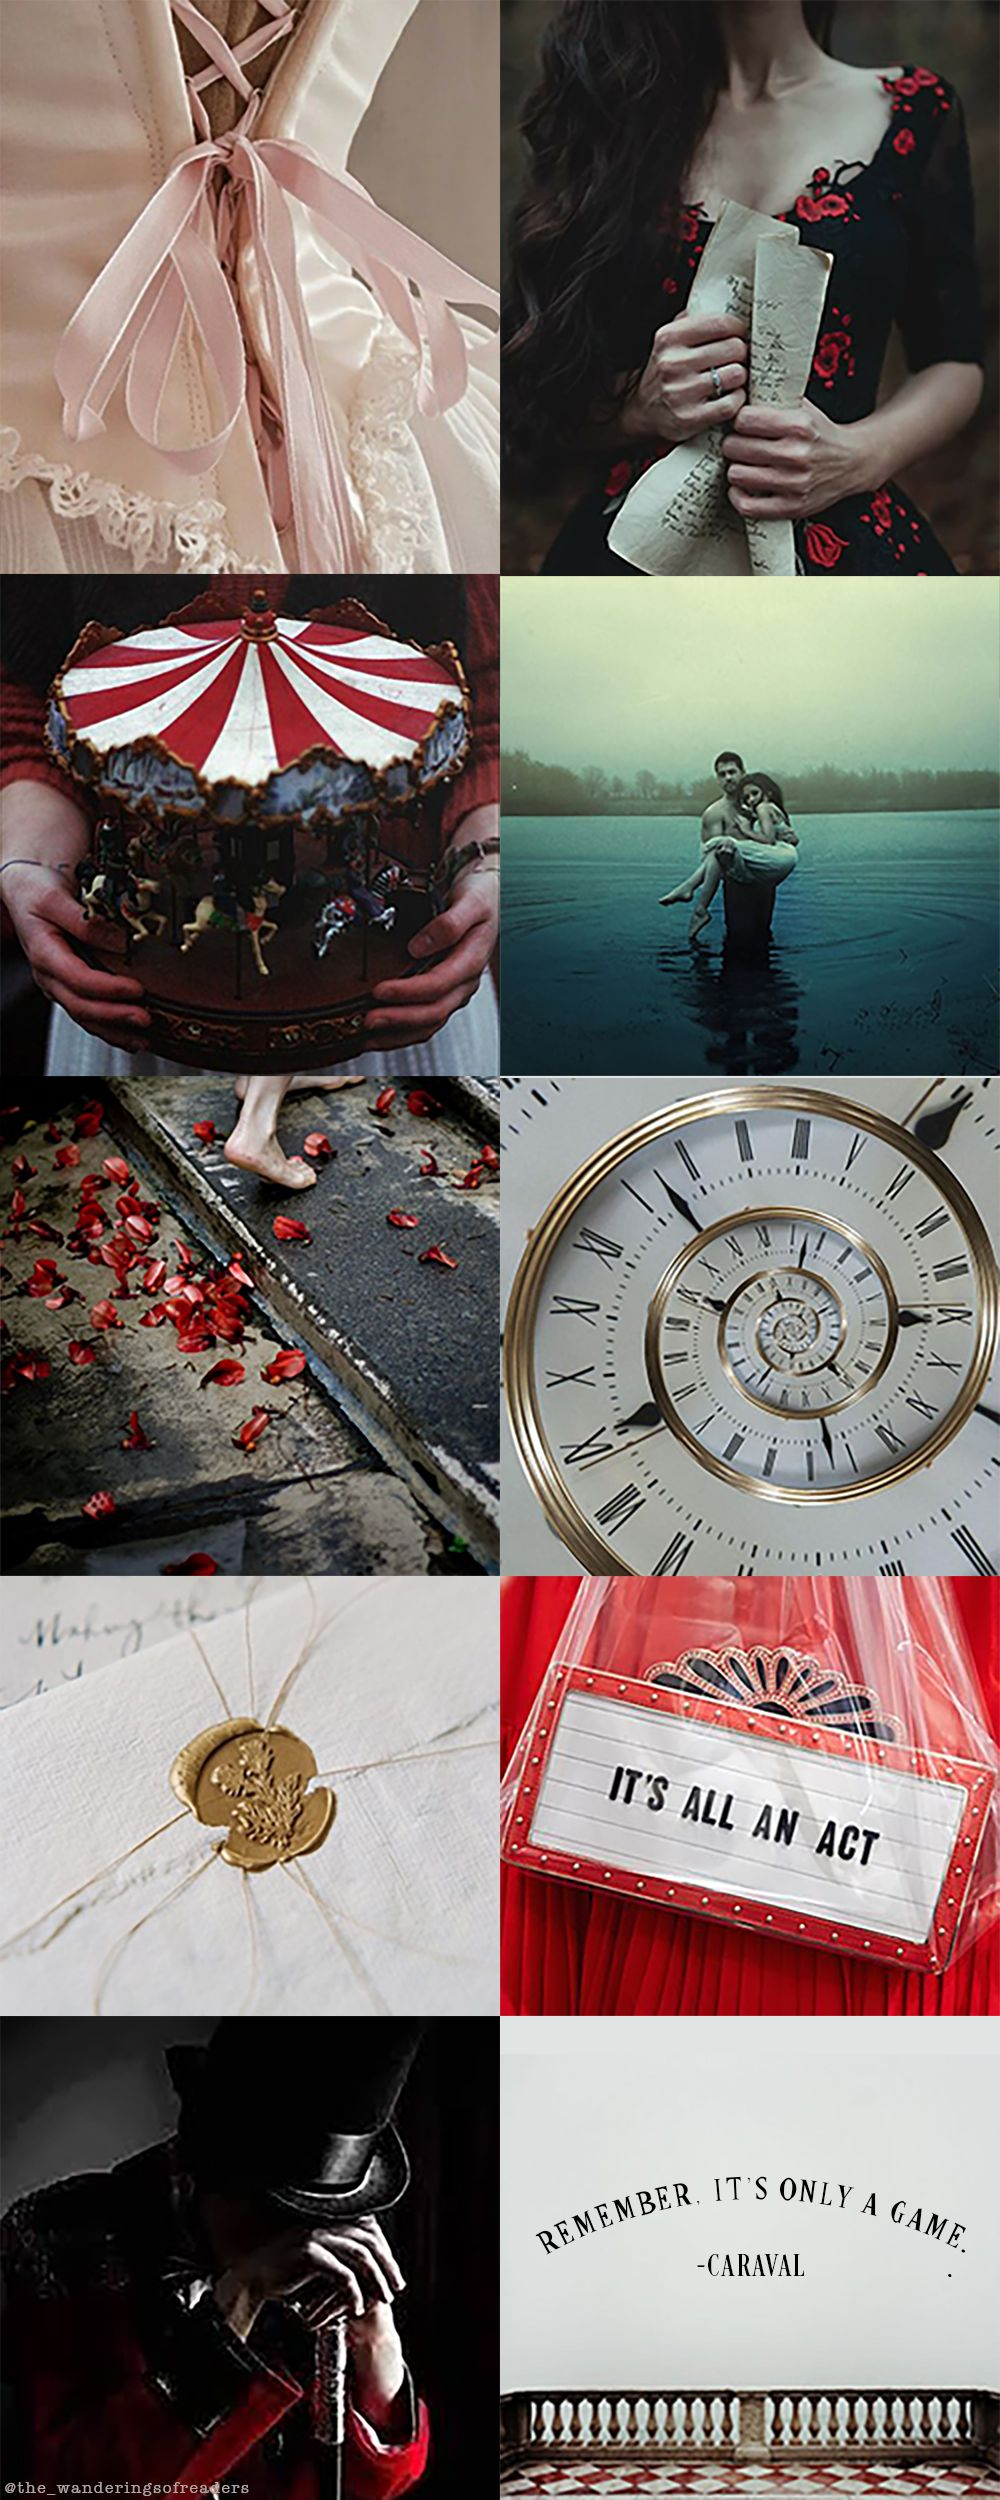 """""""Remember, it's only a game..."""" Caraval, Stephanie Garber. I loved this book!"""